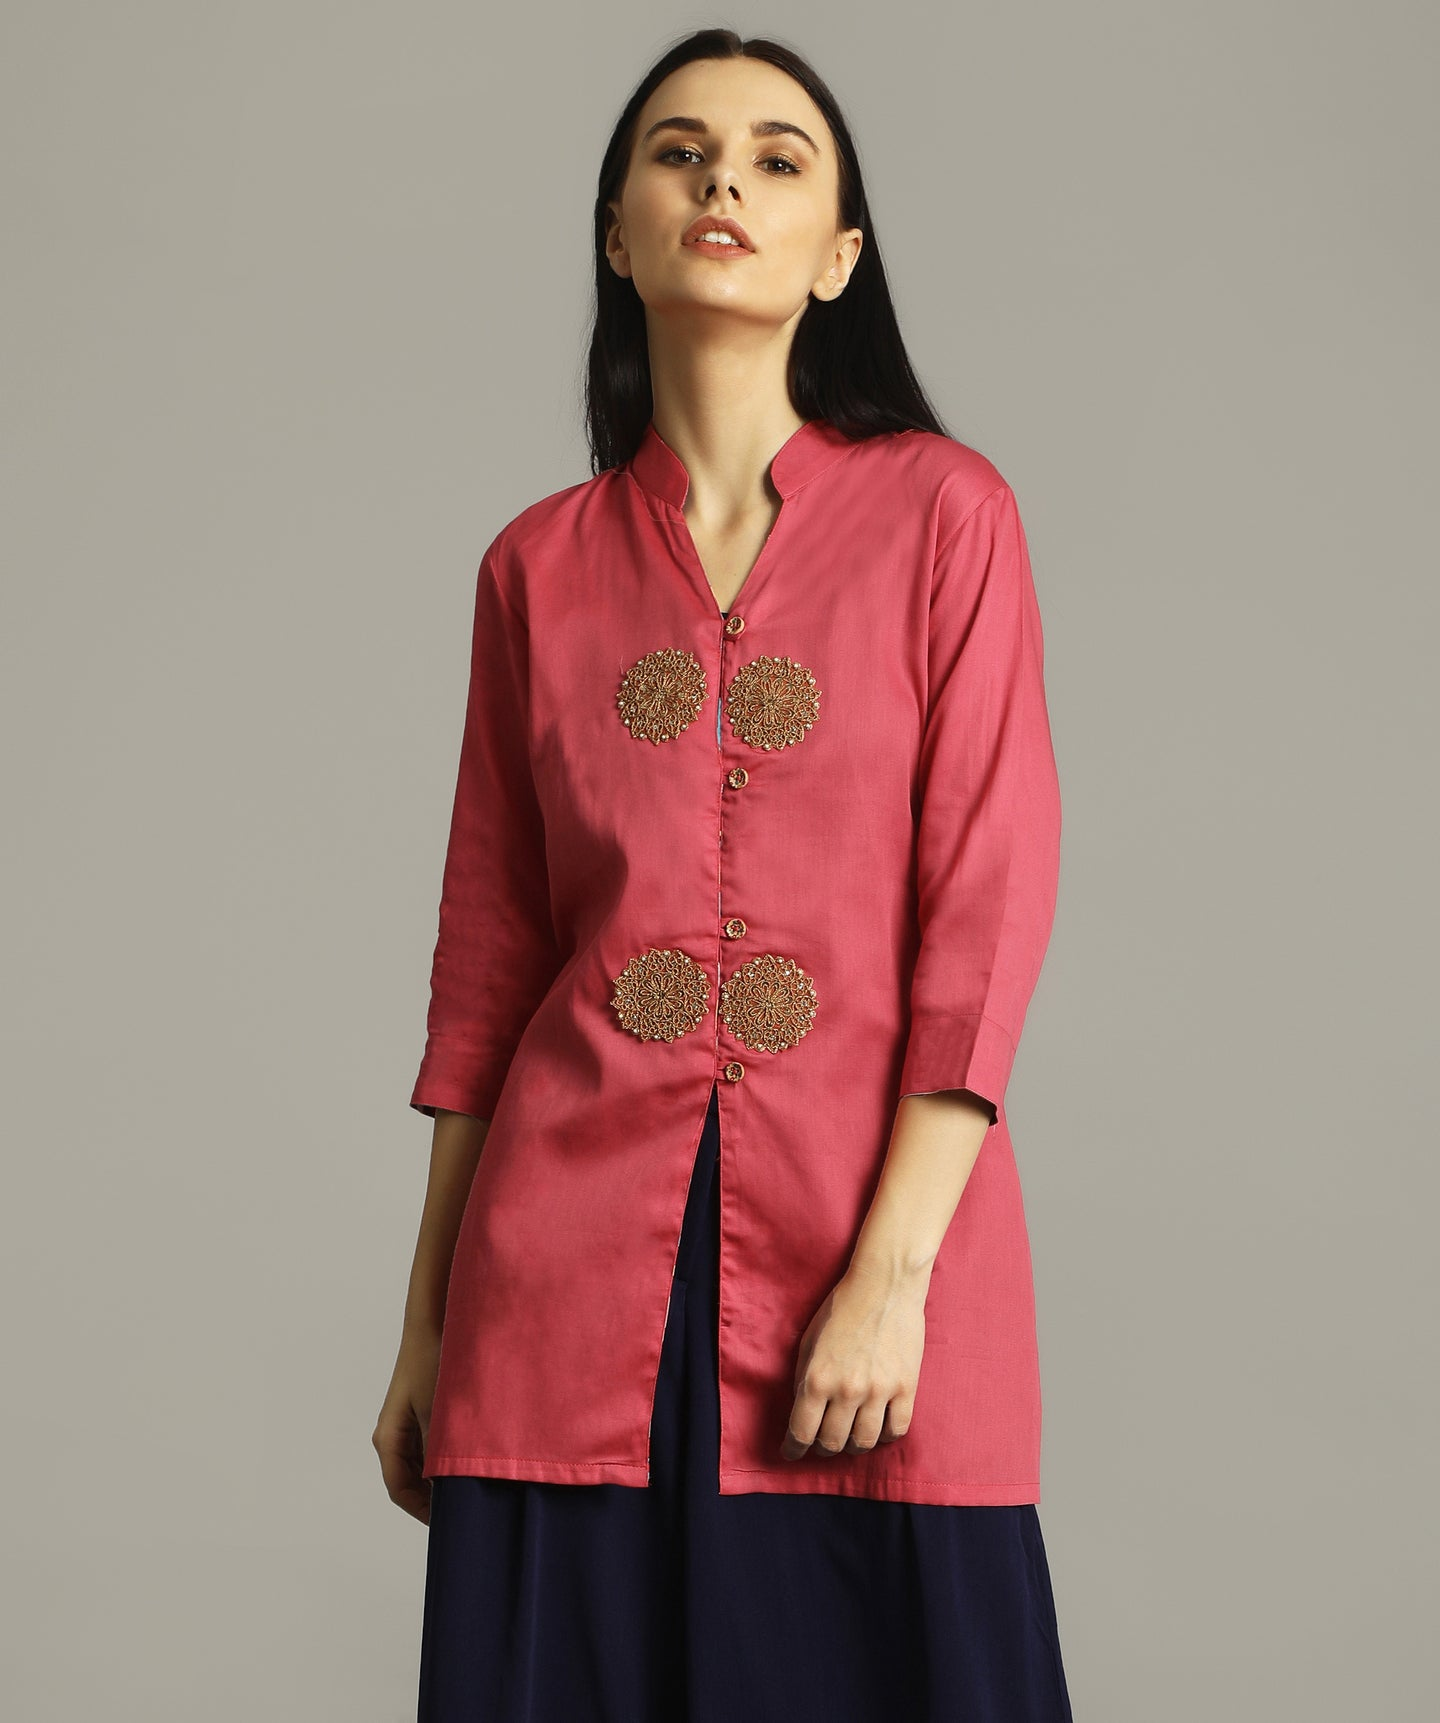 Uptownie Plus Pink Satin Cotton Tunic. FLAT 200 OFF